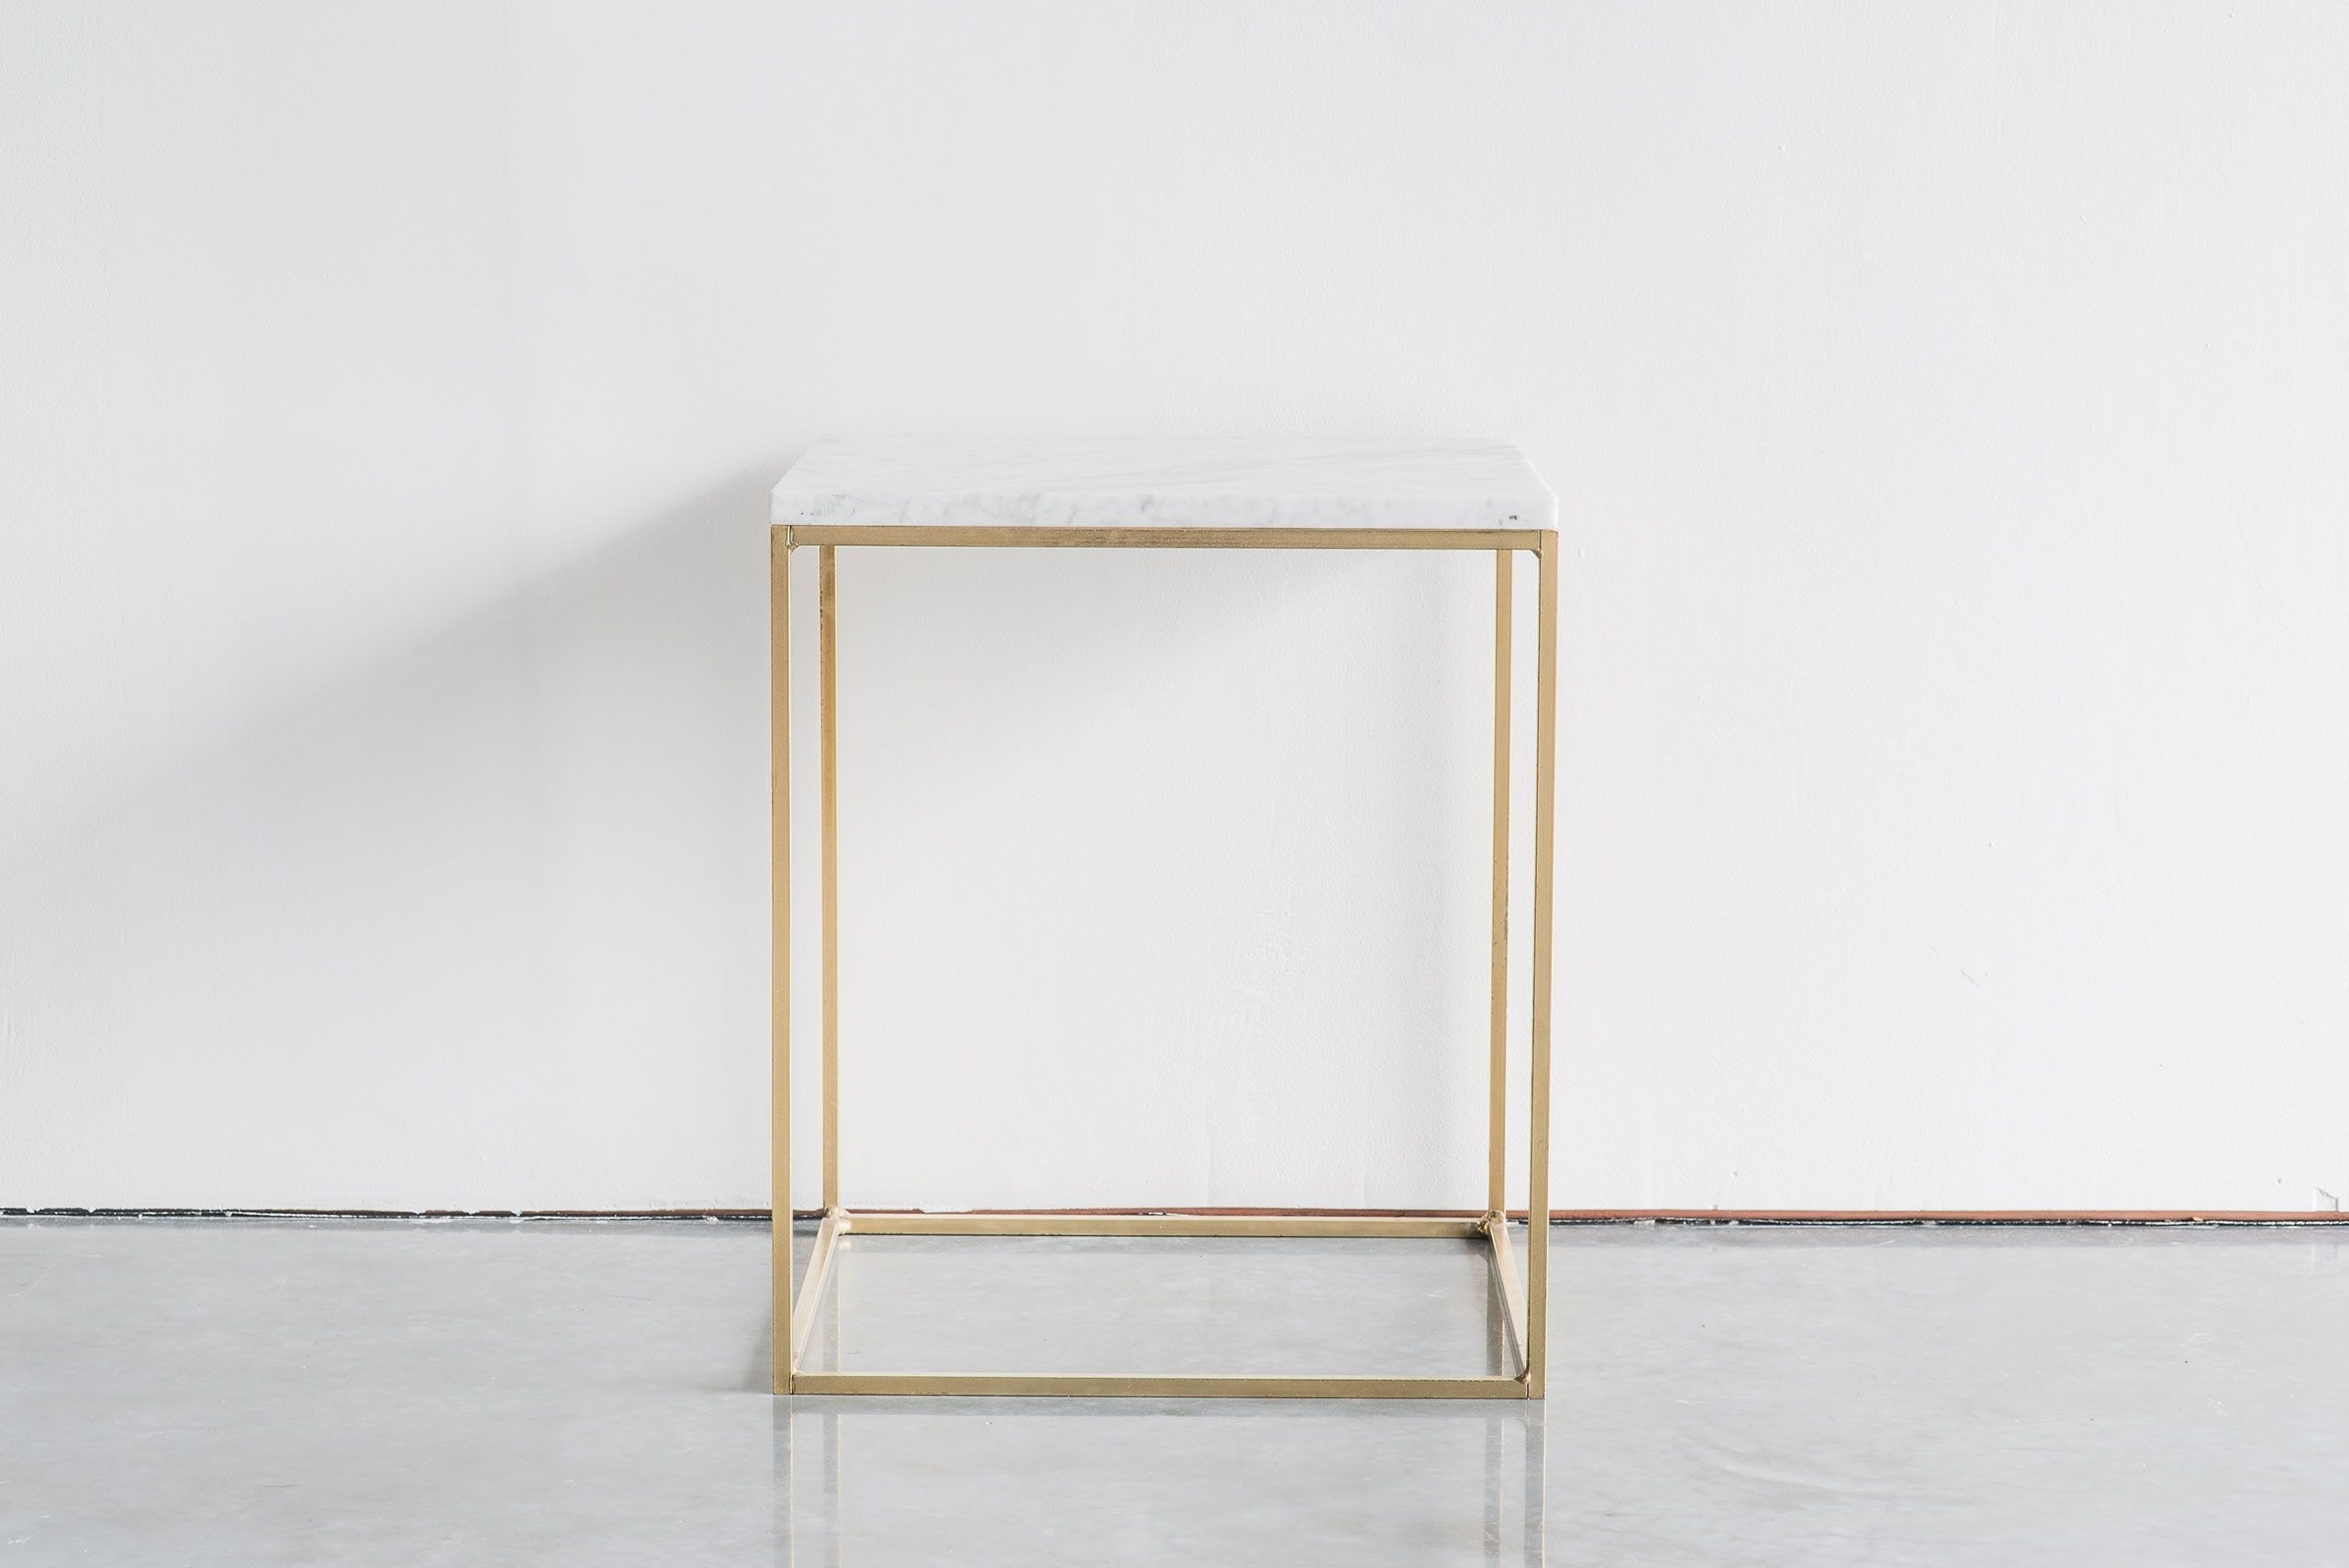 Cube Side Table Short Brass | Lounge/dining | Pinterest | Cube intended for Brass Iron Cube Tables (Image 13 of 30)